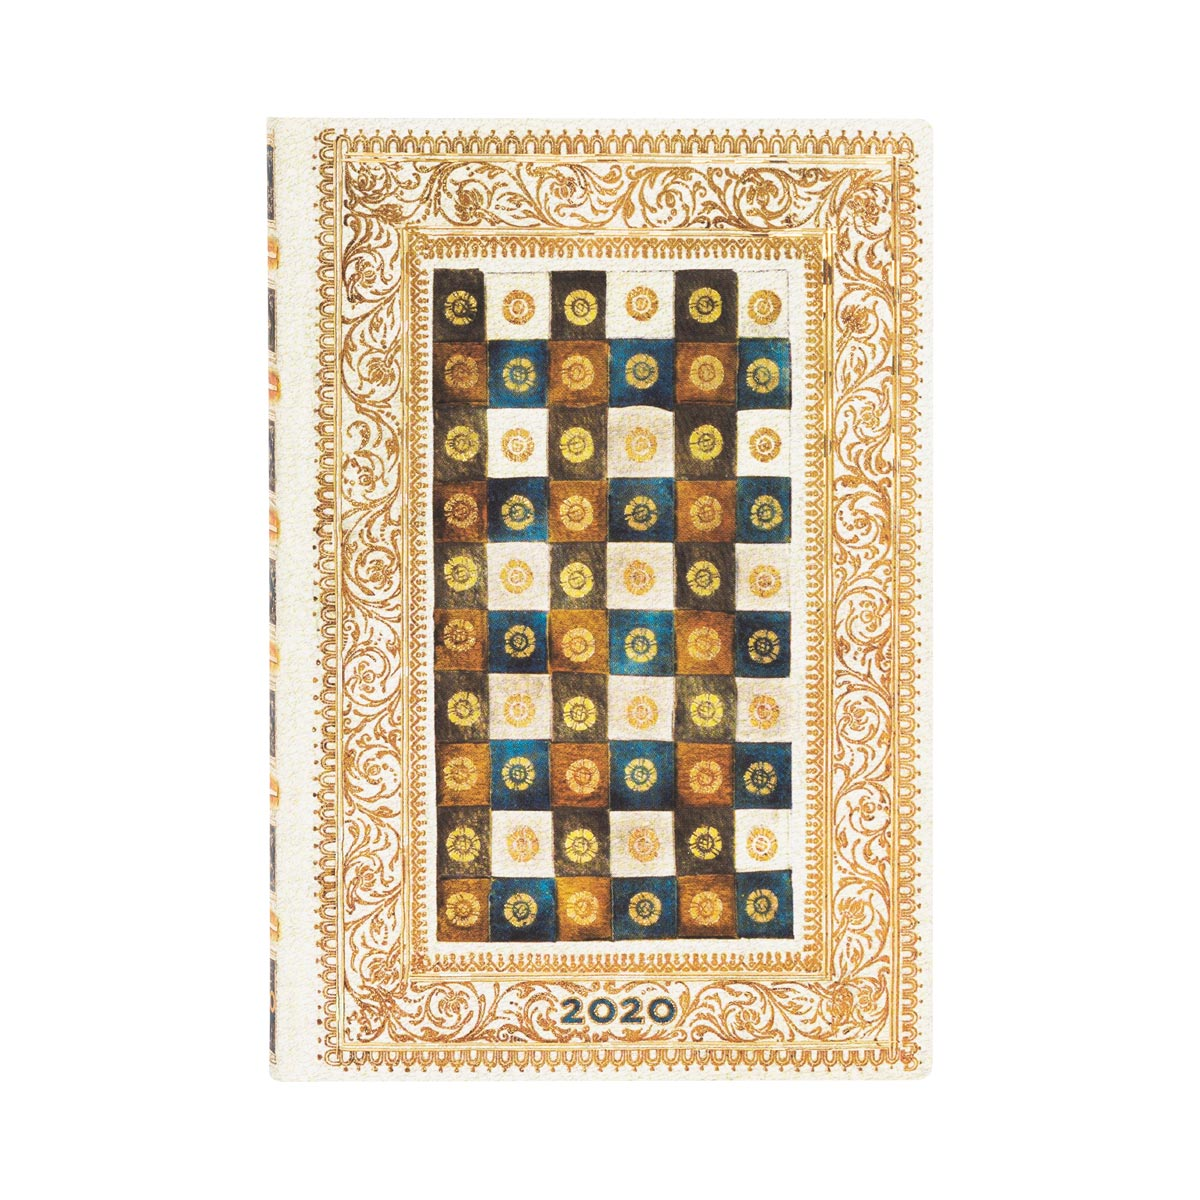 Paperblanks Mini Flexi Aureo 2020 Week-At-A-Time Planner